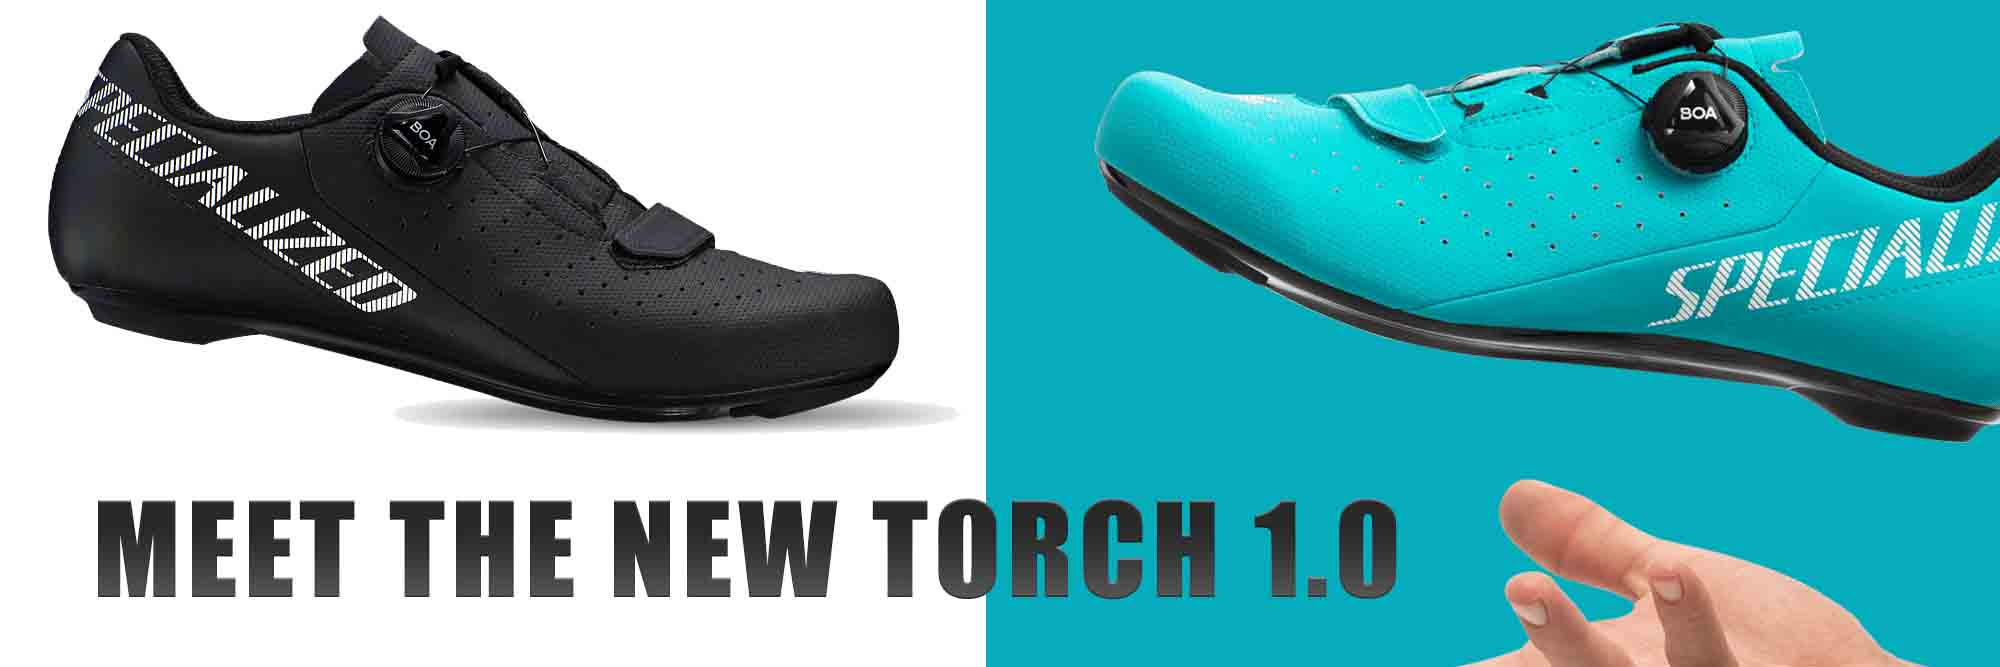 Meet the New Specialized Torch 1.0 Shoe